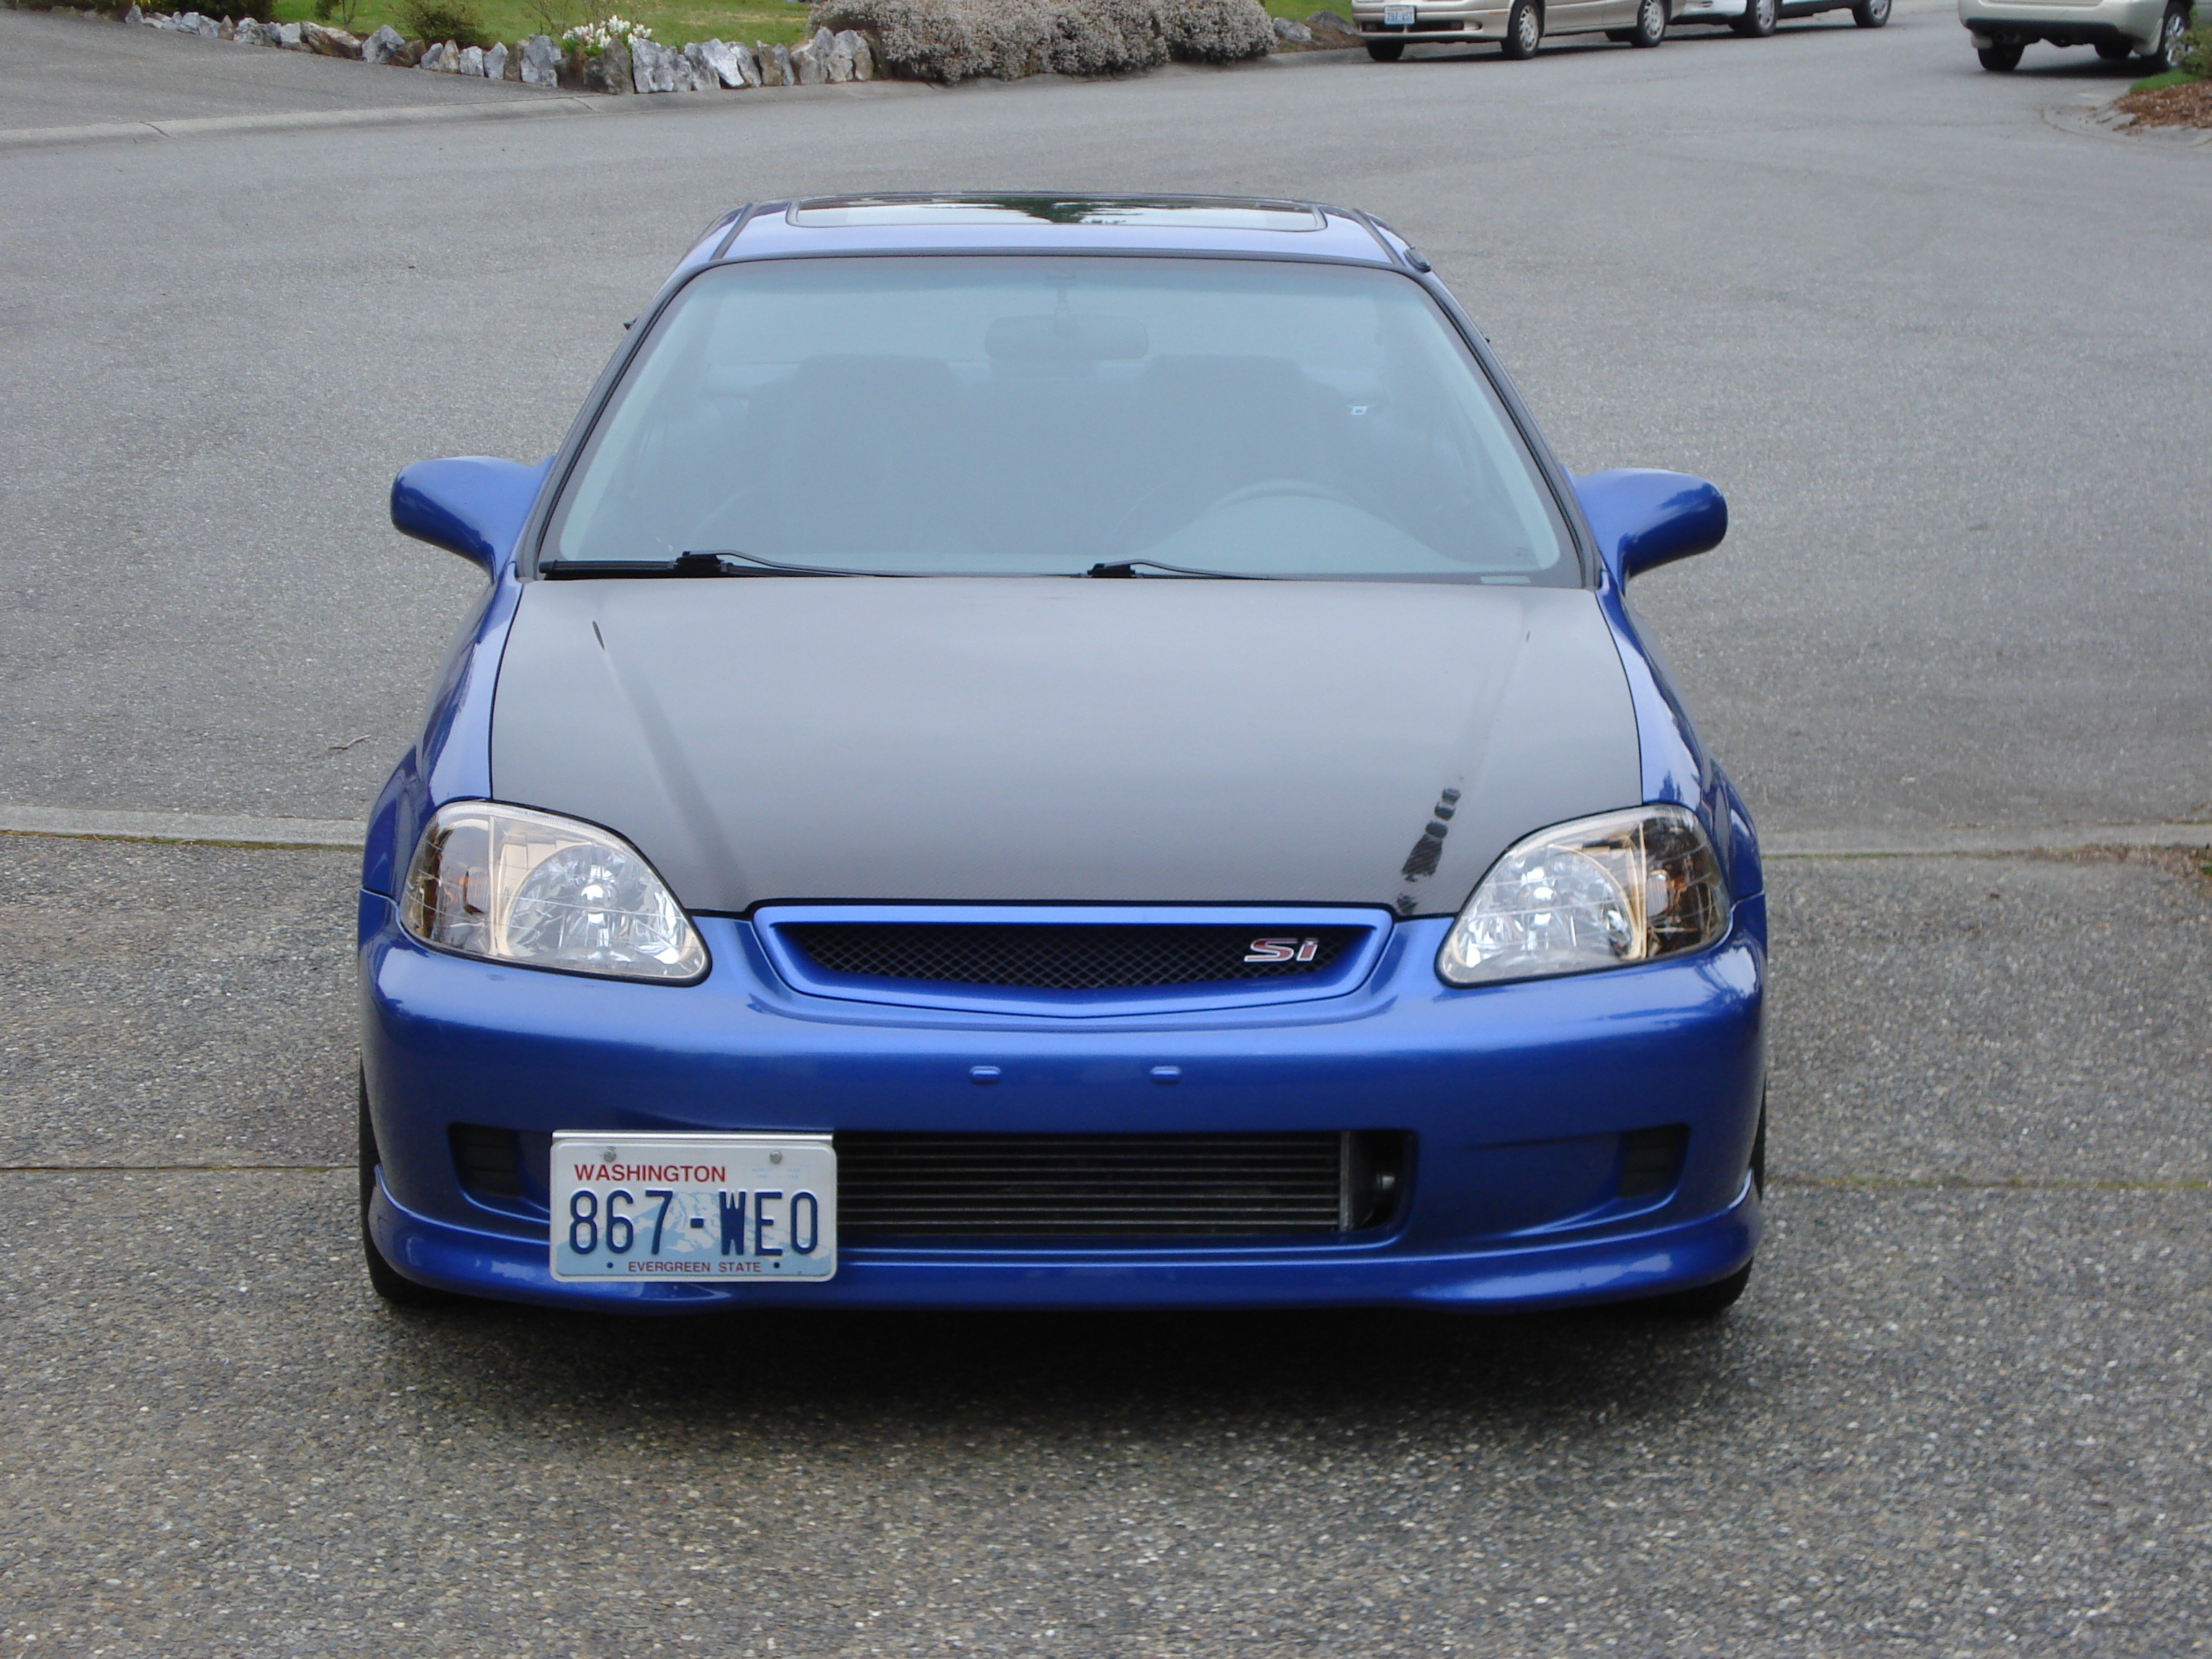 spoonsports94 39 s 2000 honda civic si coupe 2d in lynnwood wa. Black Bedroom Furniture Sets. Home Design Ideas